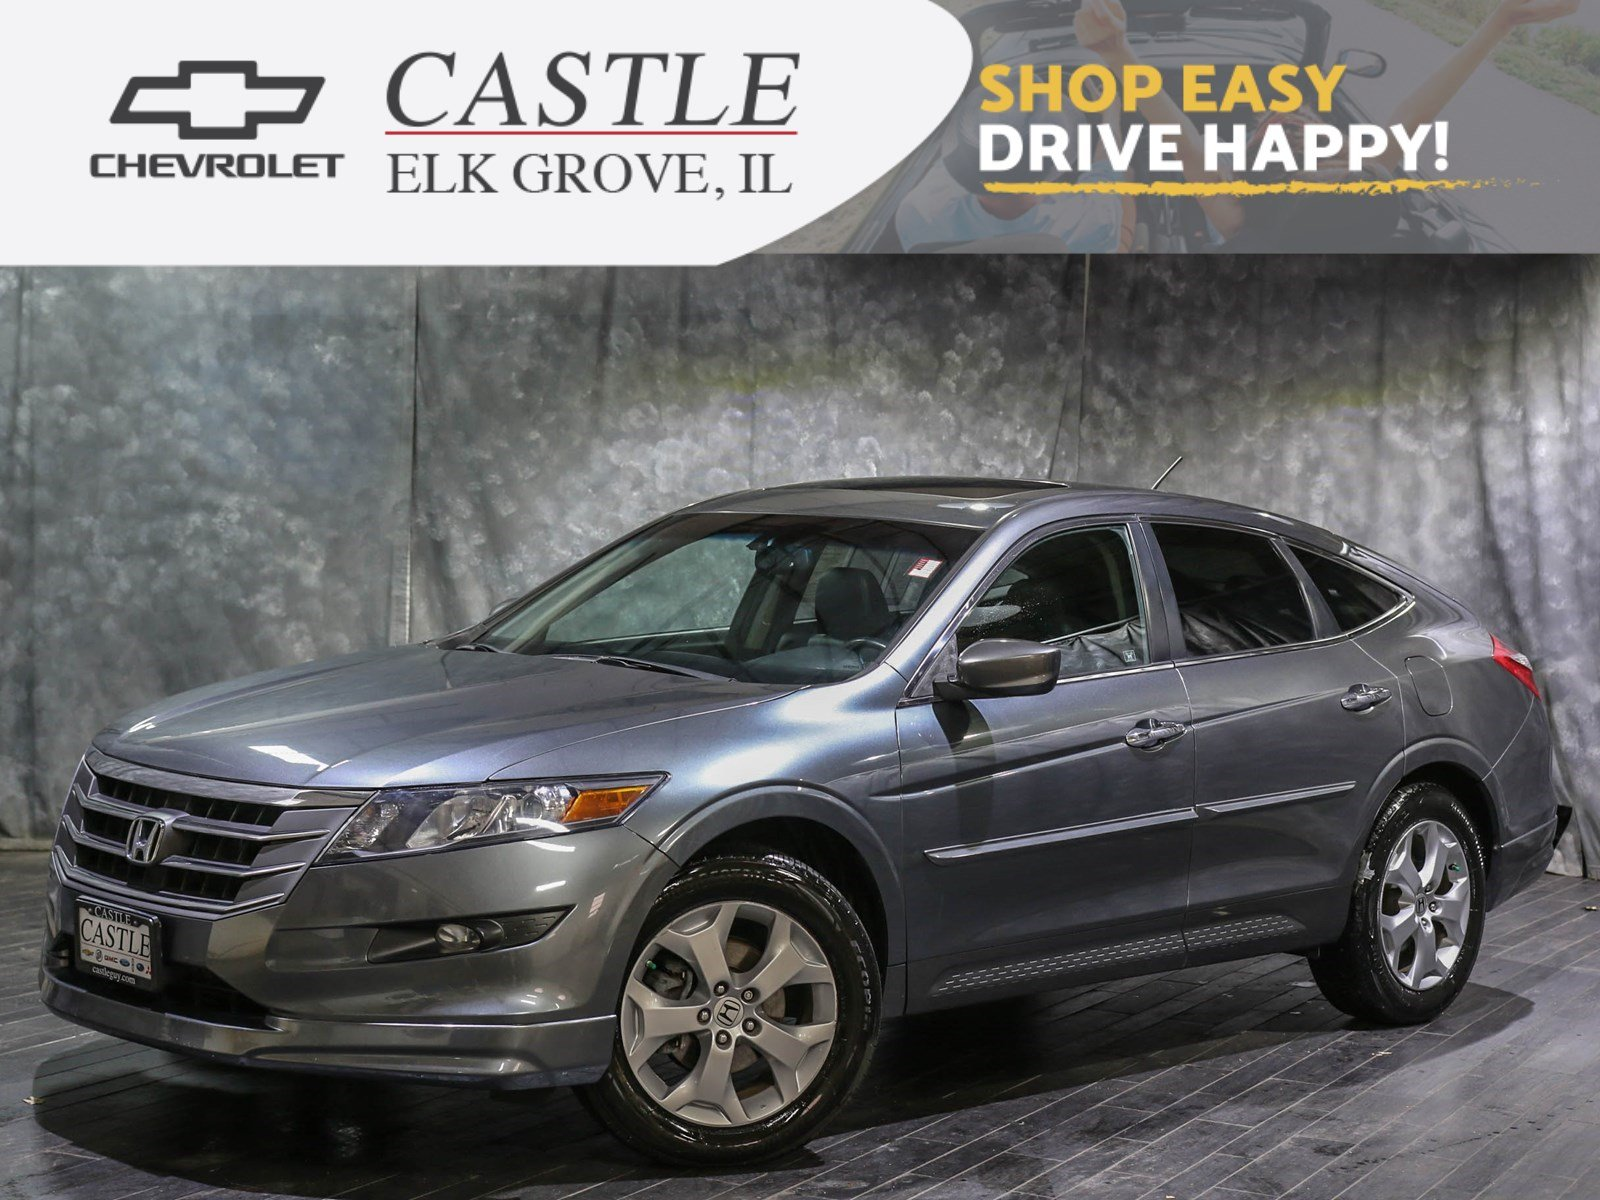 Used Honda Crosstour >> Pre Owned 2010 Honda Accord Crosstour Ex L Hatchback In Villa Park